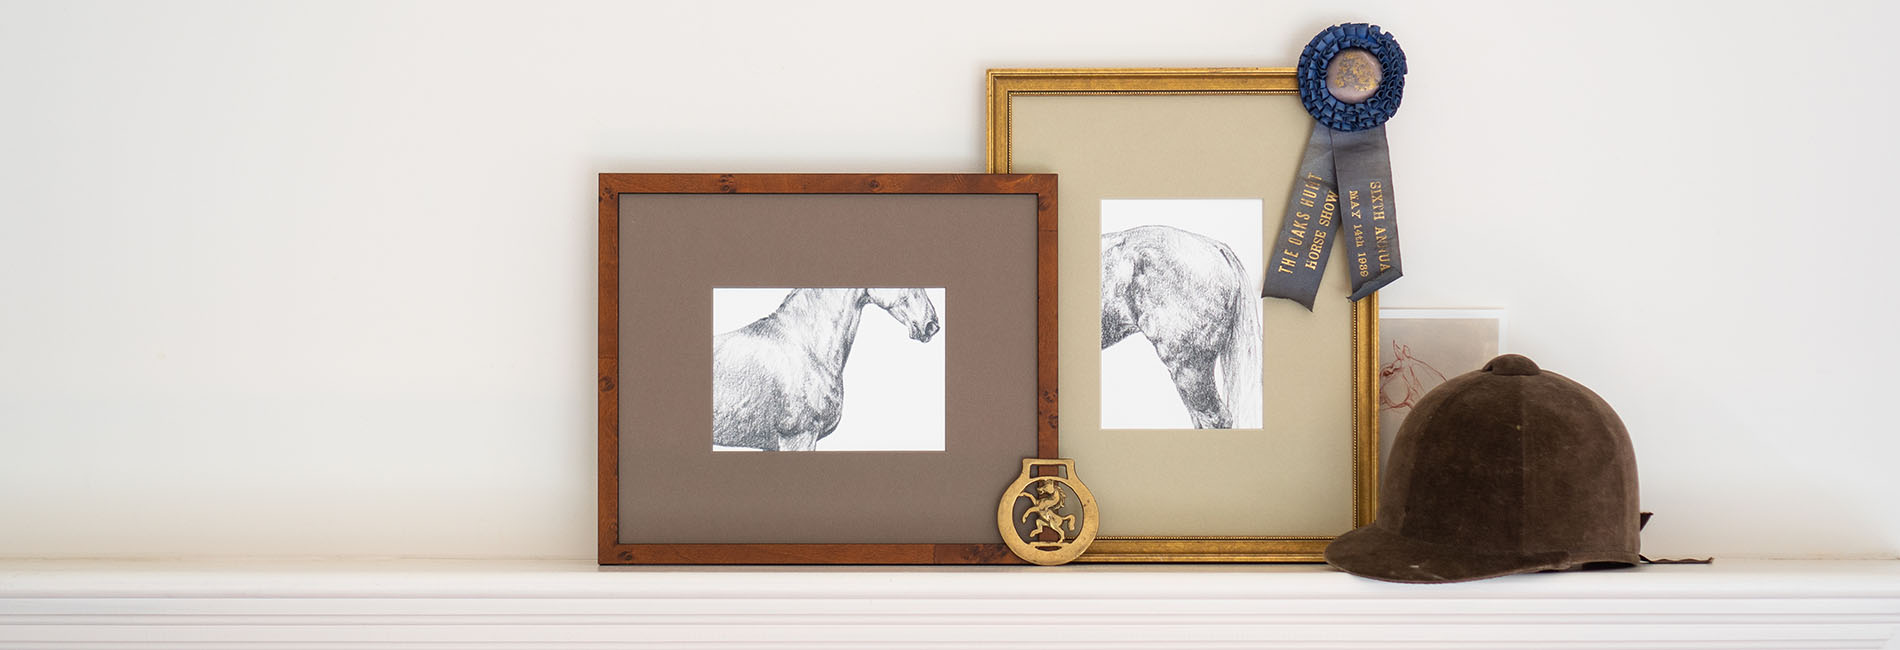 framed prints of graphite drawings of horses by danielle demers